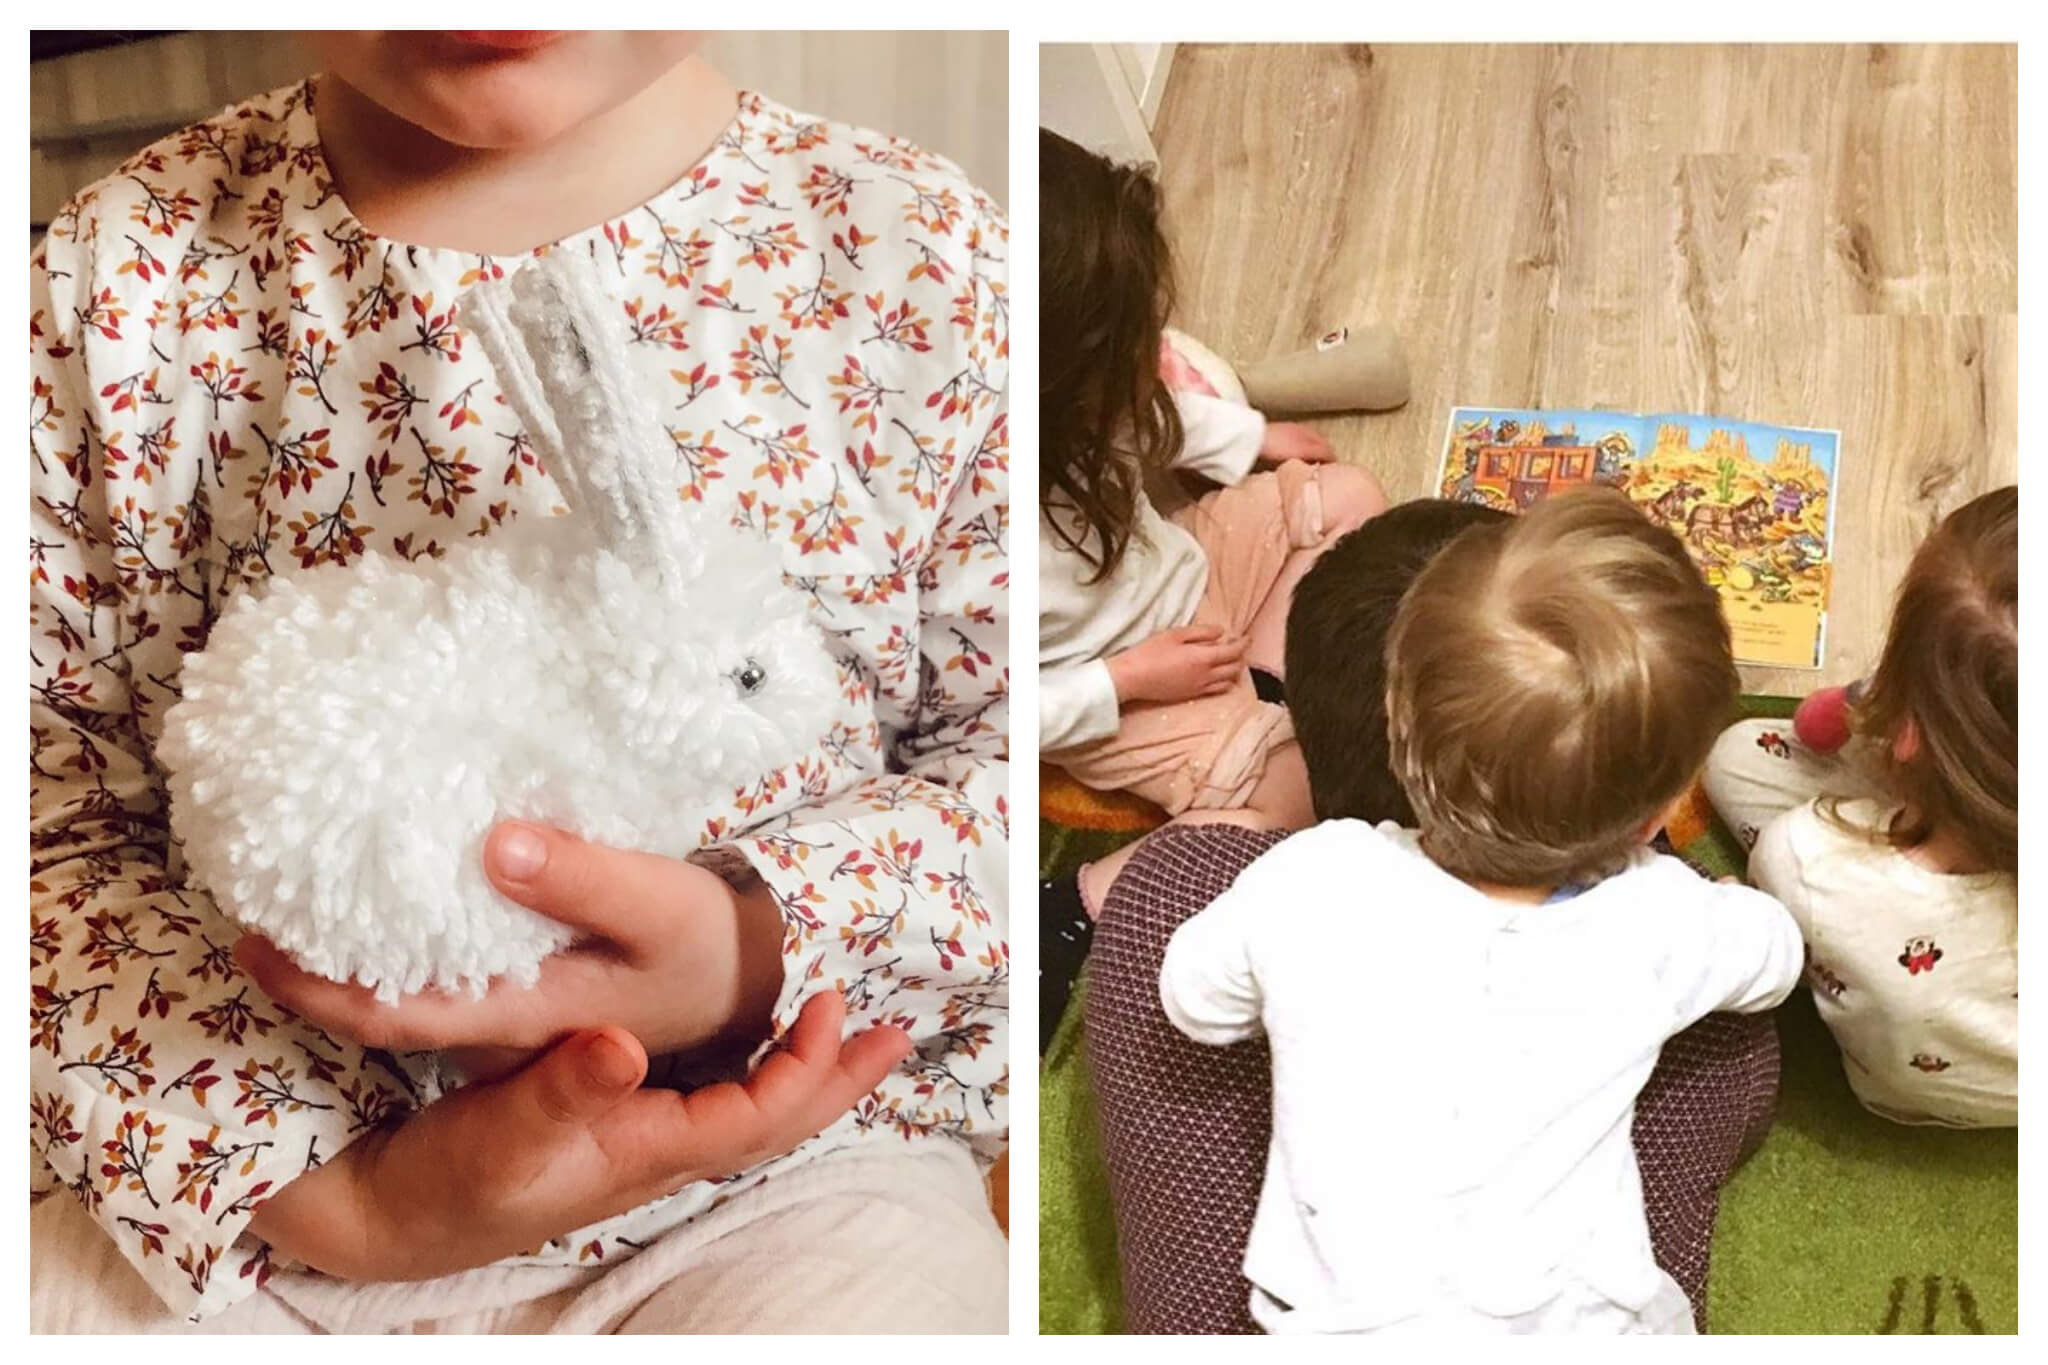 Left: A child holds a white stuffed animal rabbit in their hands, Right: A person reads a story to three children who are on top and around him.